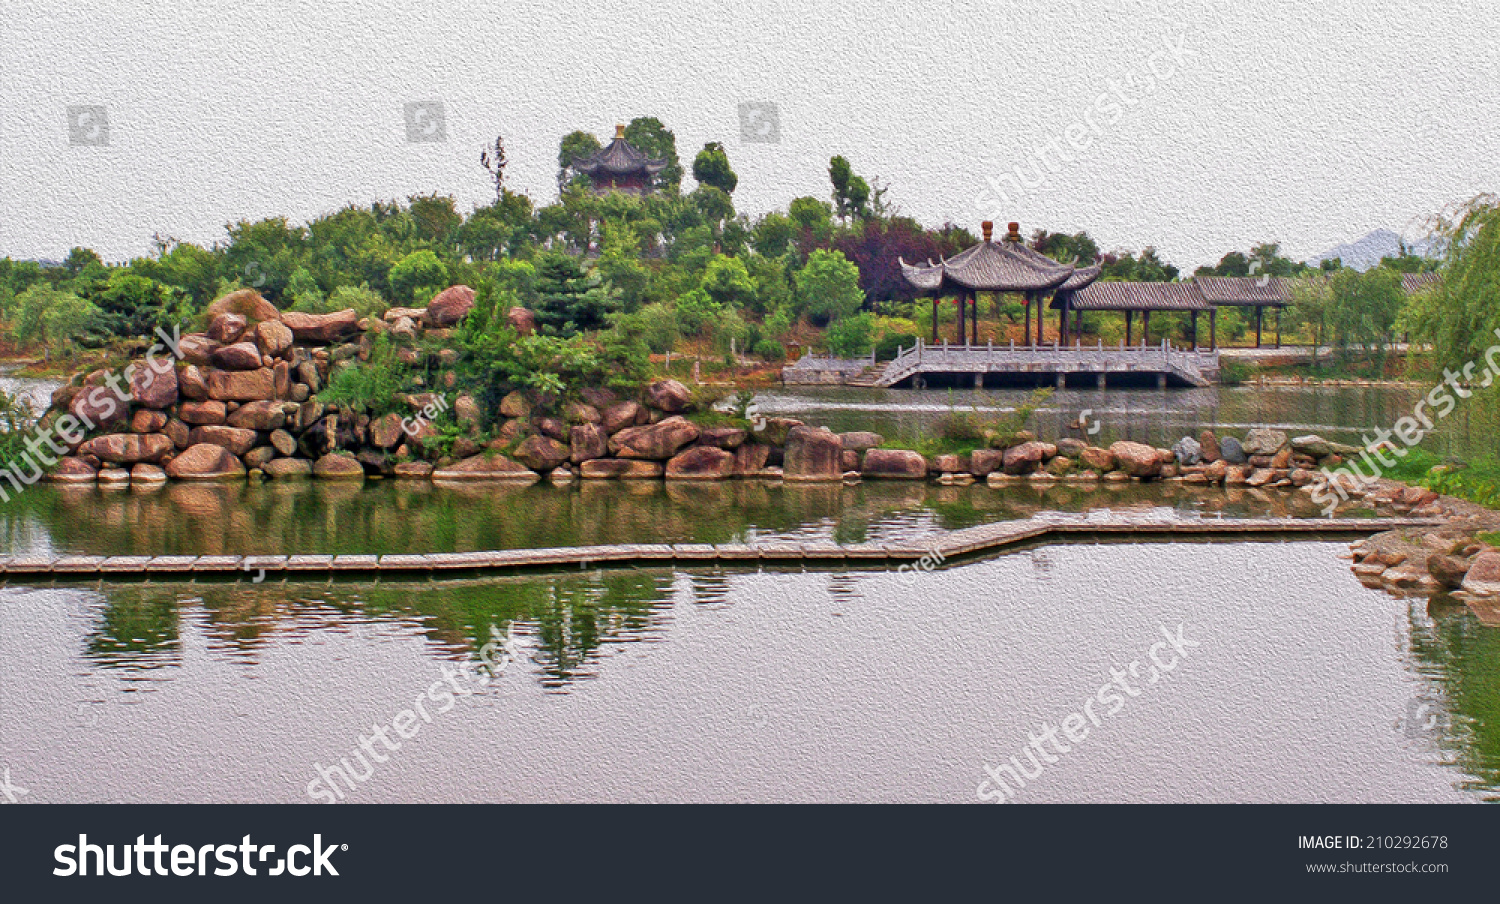 Generic Ancient Chinese Garden Architecture Stylized Stock